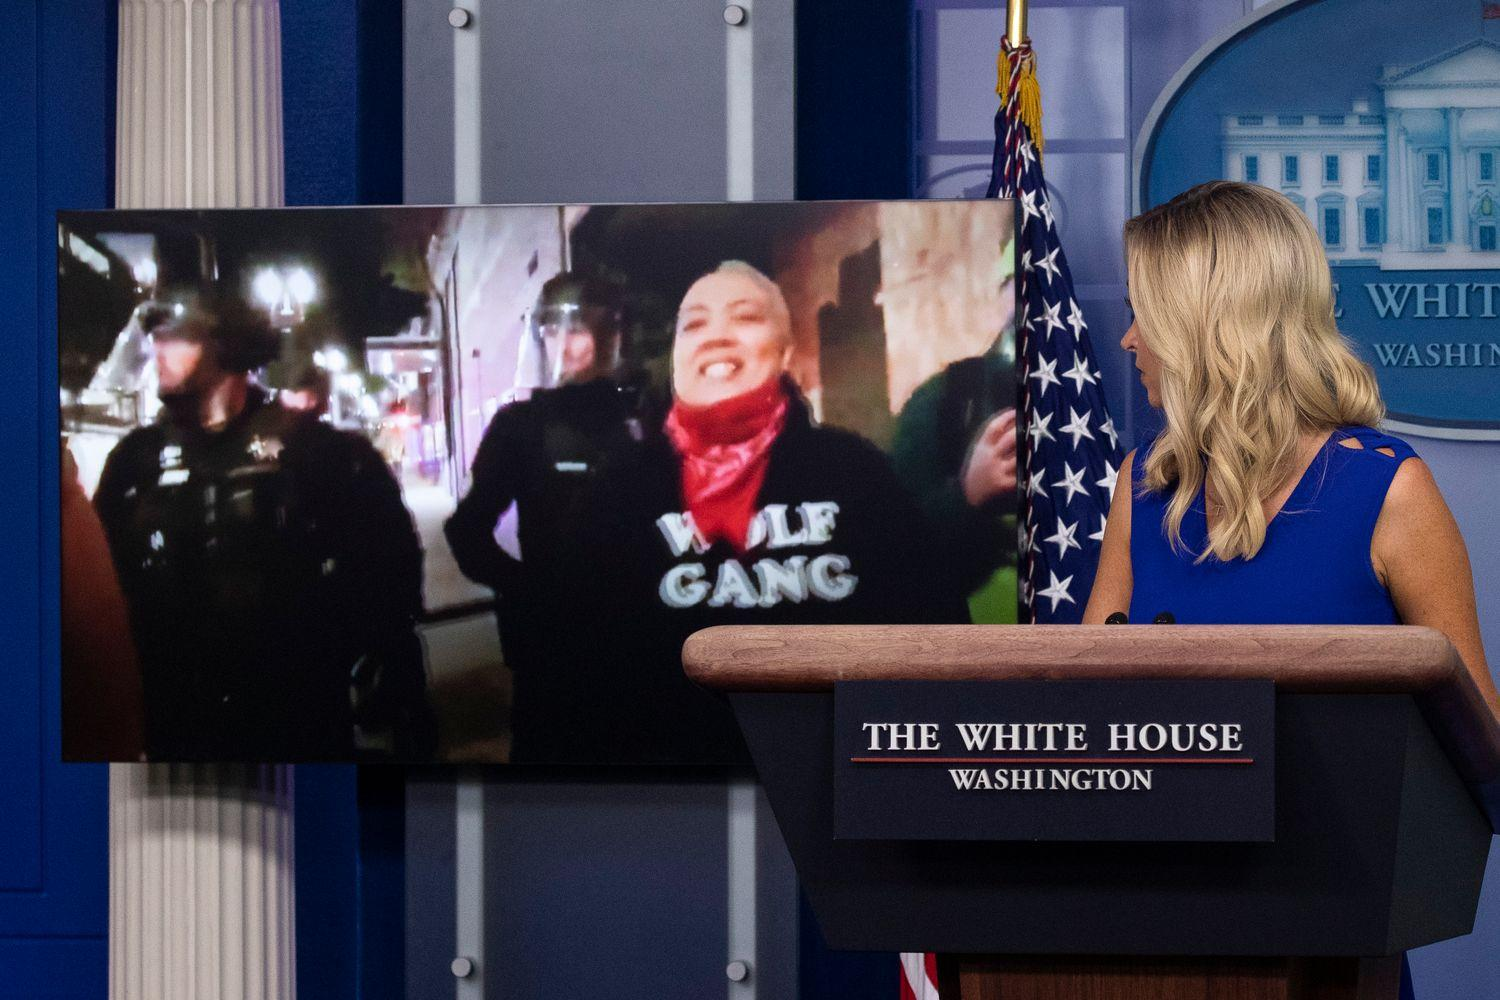 Fox News breaks away from White House briefing that aired 'F--- Cops' graffiti